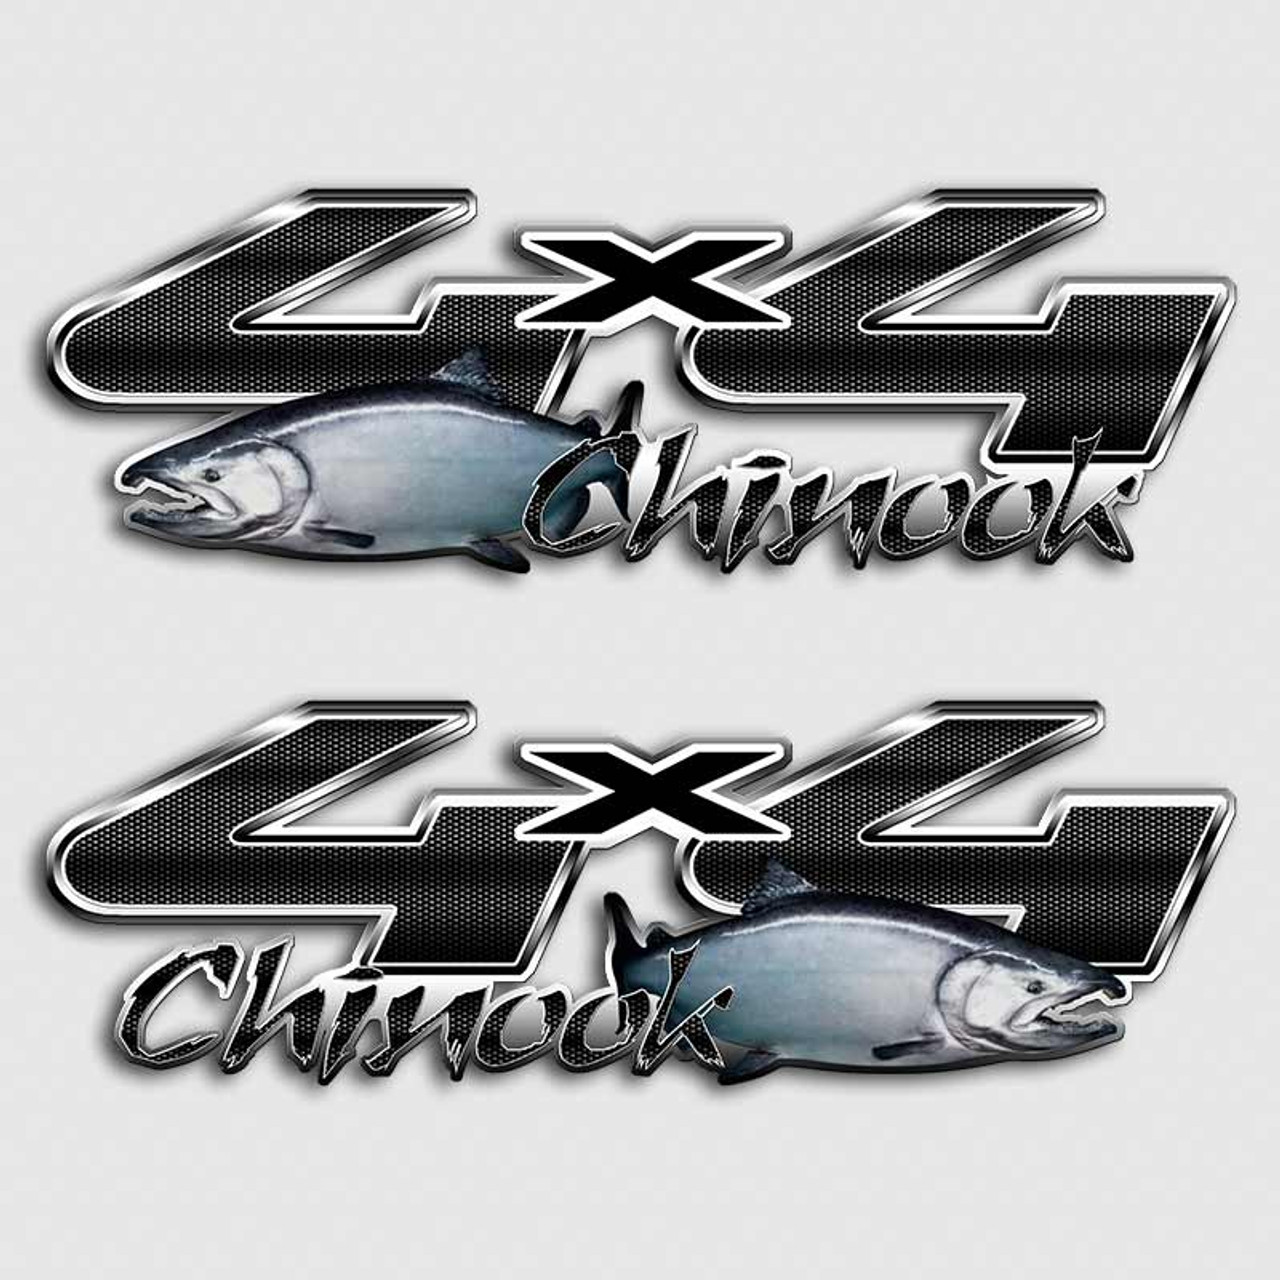 Chinook Salmon Truck Decals Alaskan Angler Ford Truck Decals